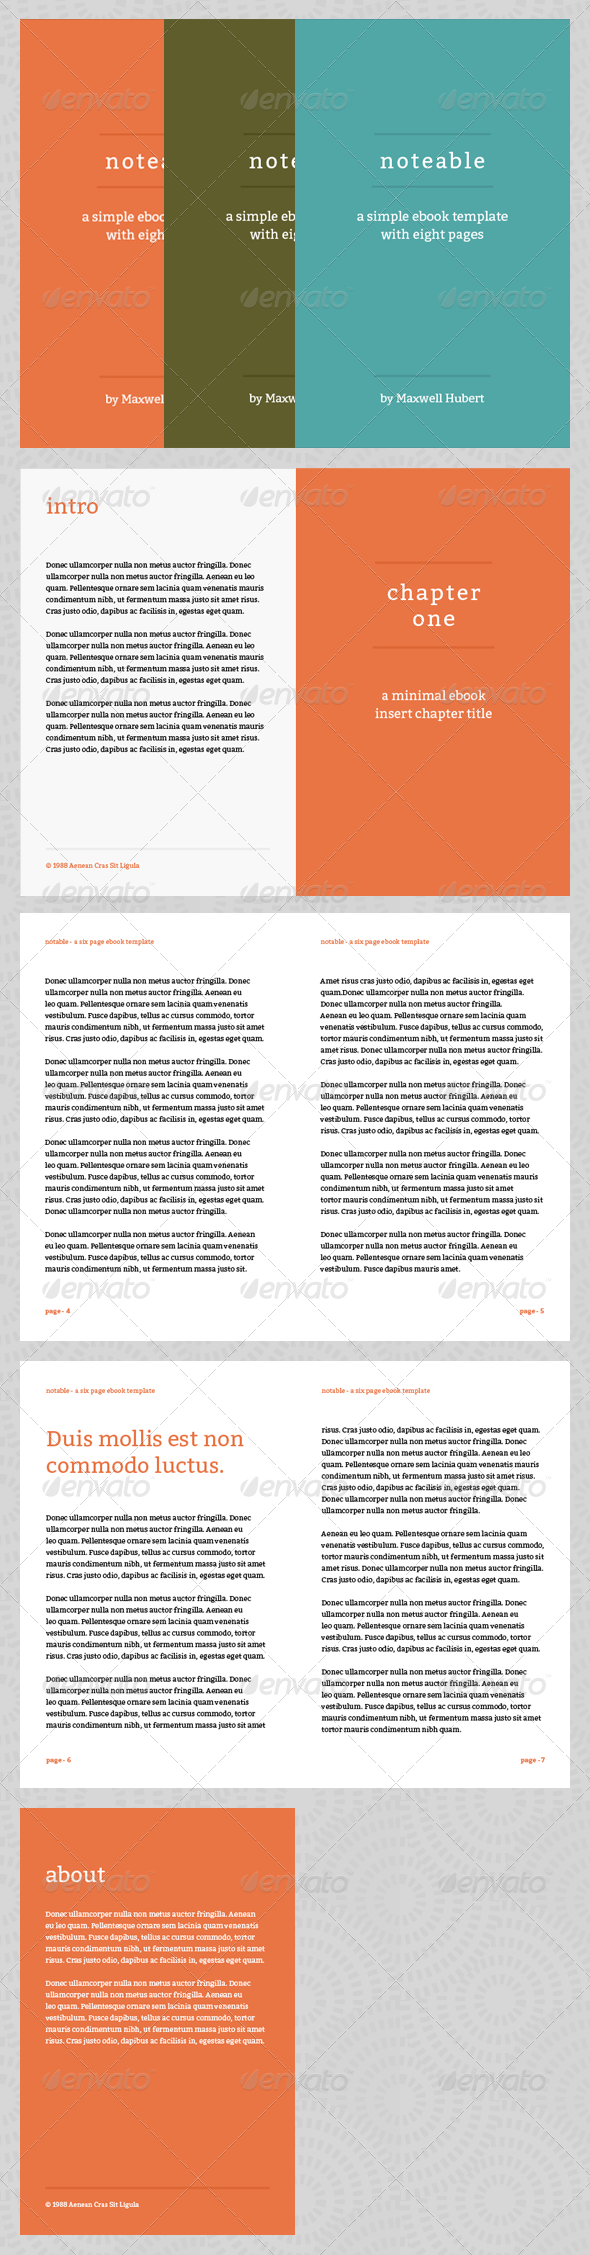 Free Ebook Templates. notable ebook template or print book by ...